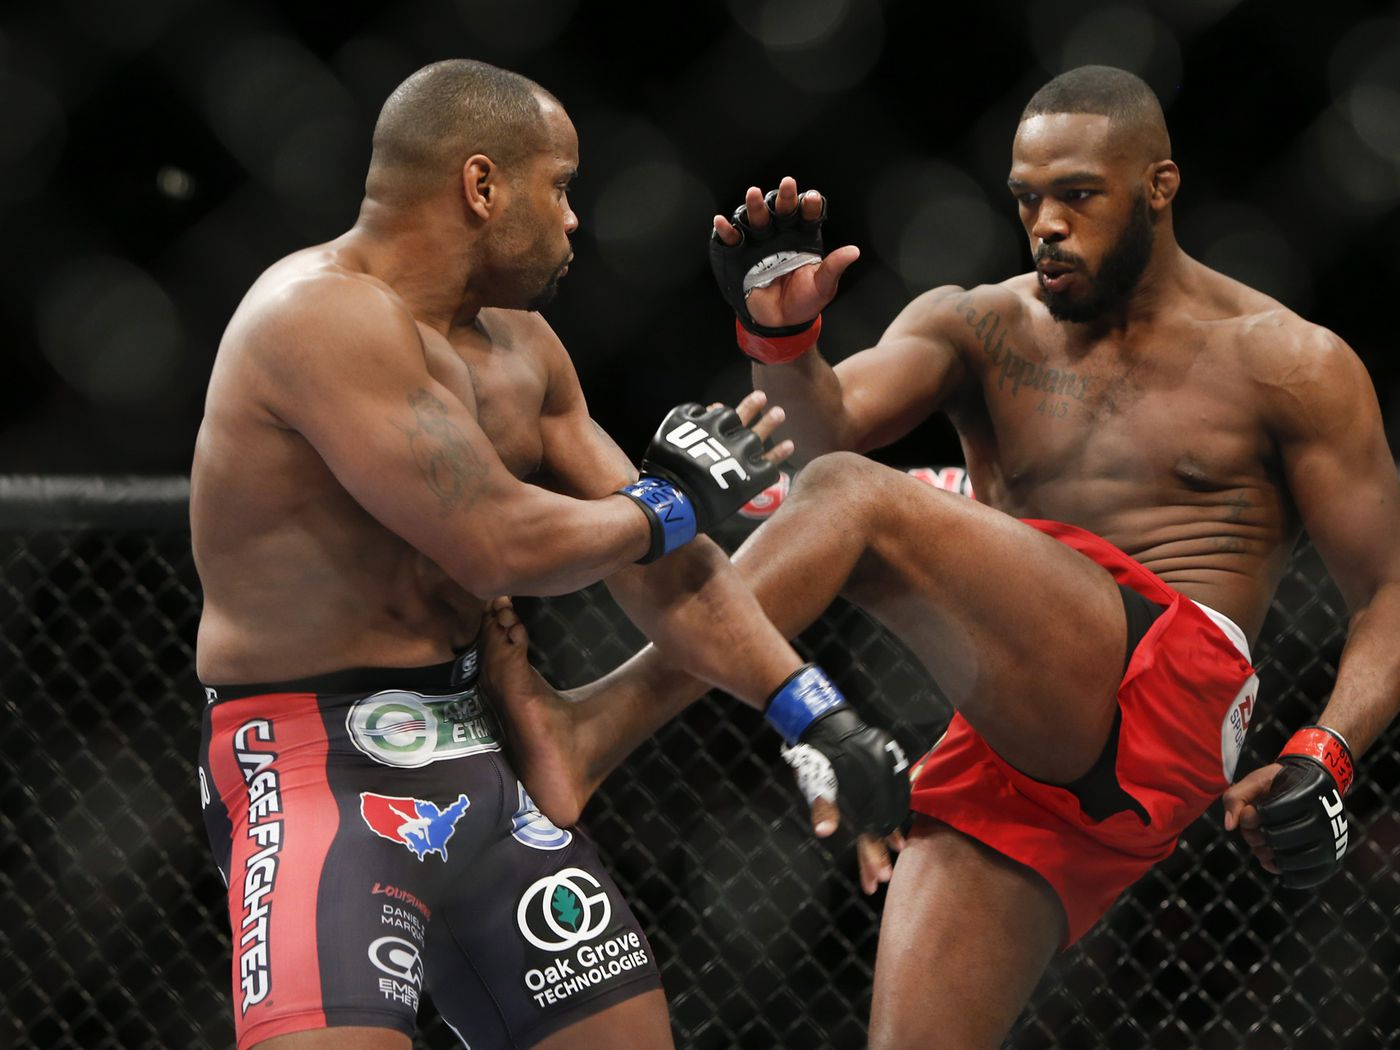 Official documents from Jon Jones, Daniel Cormier UFC 182 drug test reports - MMA Fighting